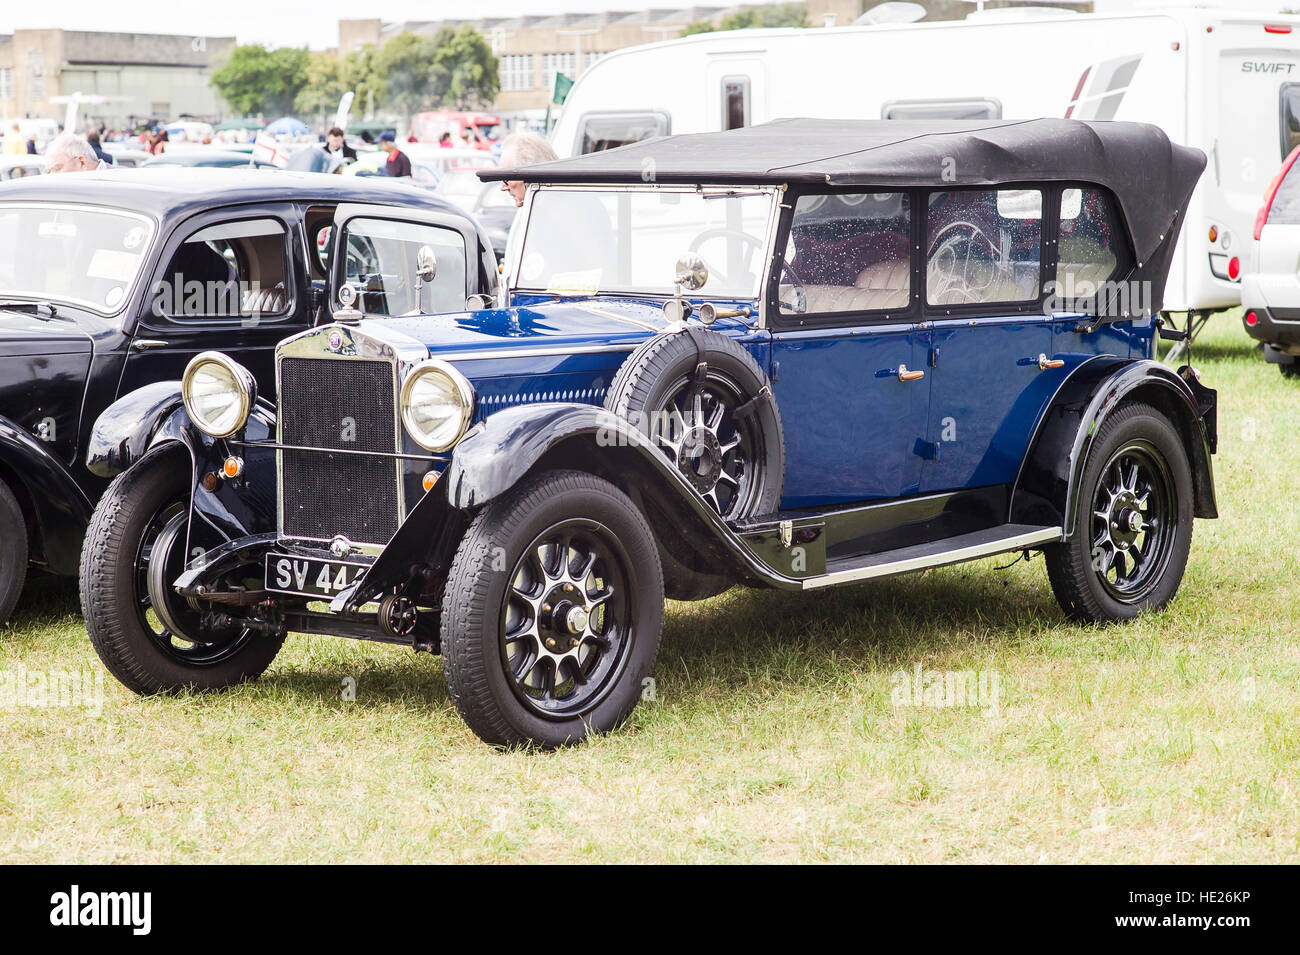 Possibly Fiat 507 soft-top car from the 1920s - Stock Image